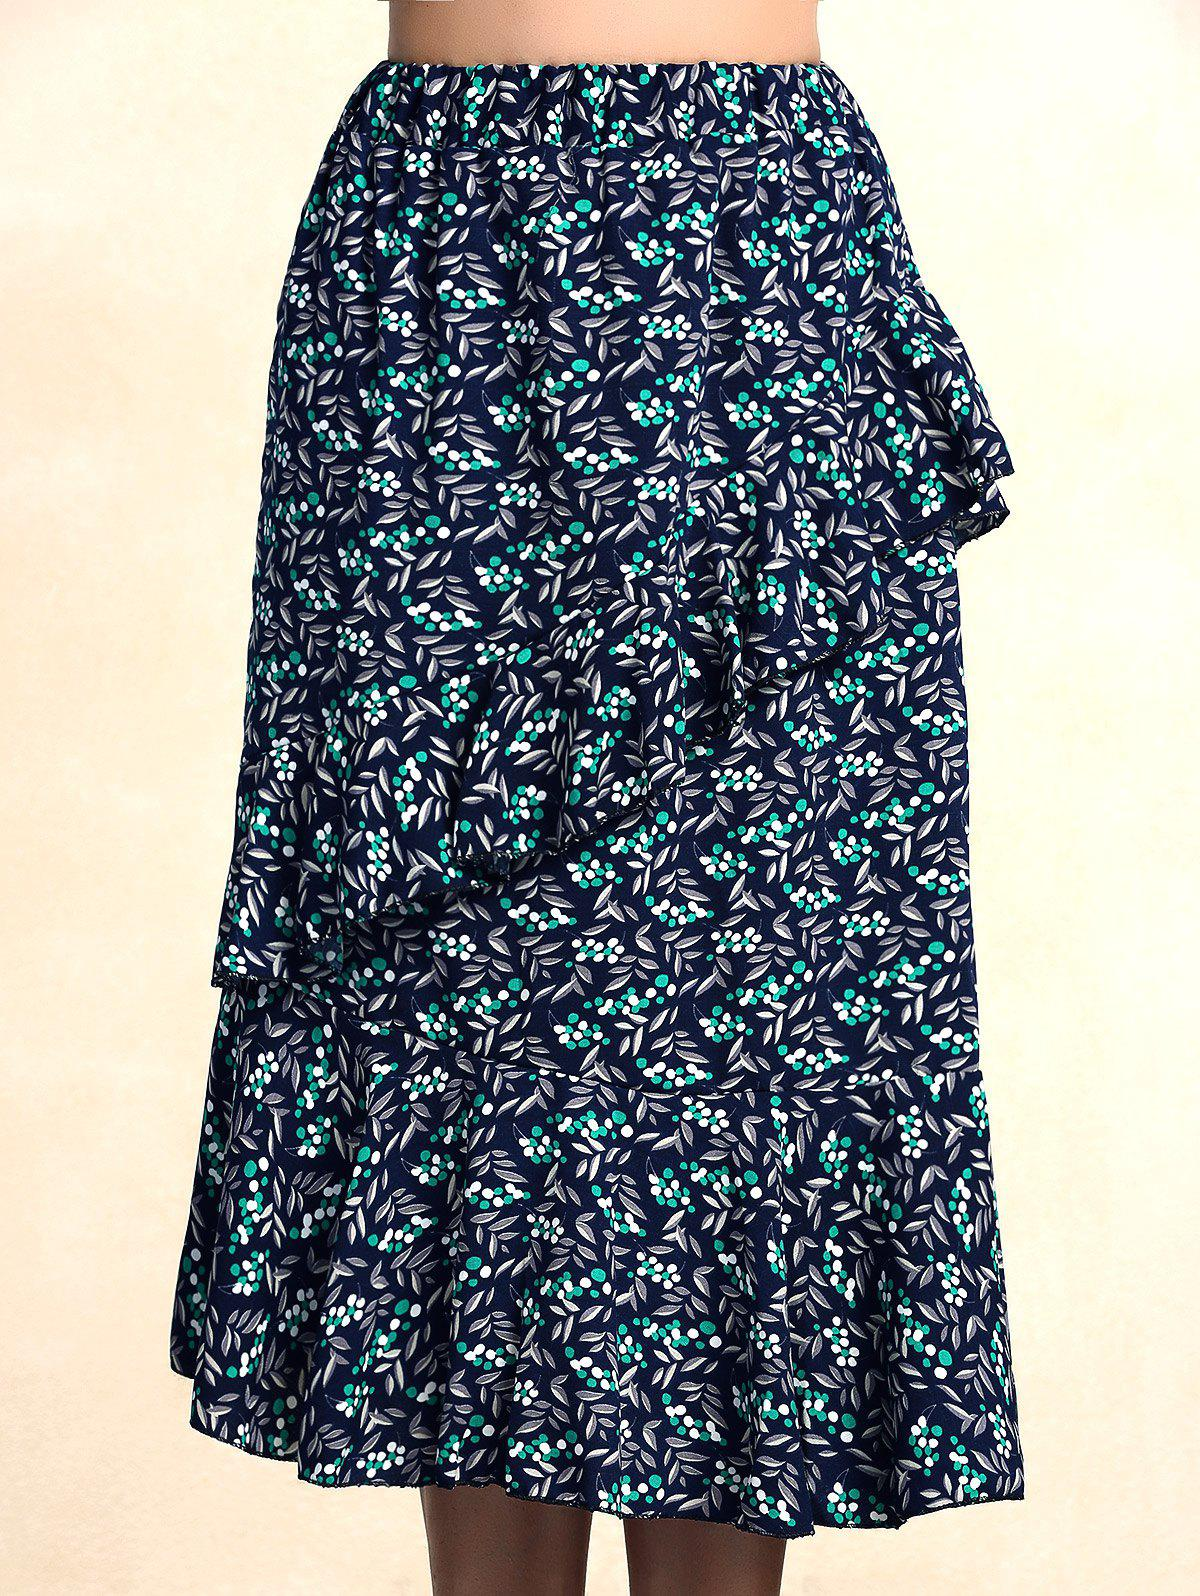 Charming Stretchy Print Women's Skirt - COLORMIX ONE SIZE(FIT SIZE XS TO M)